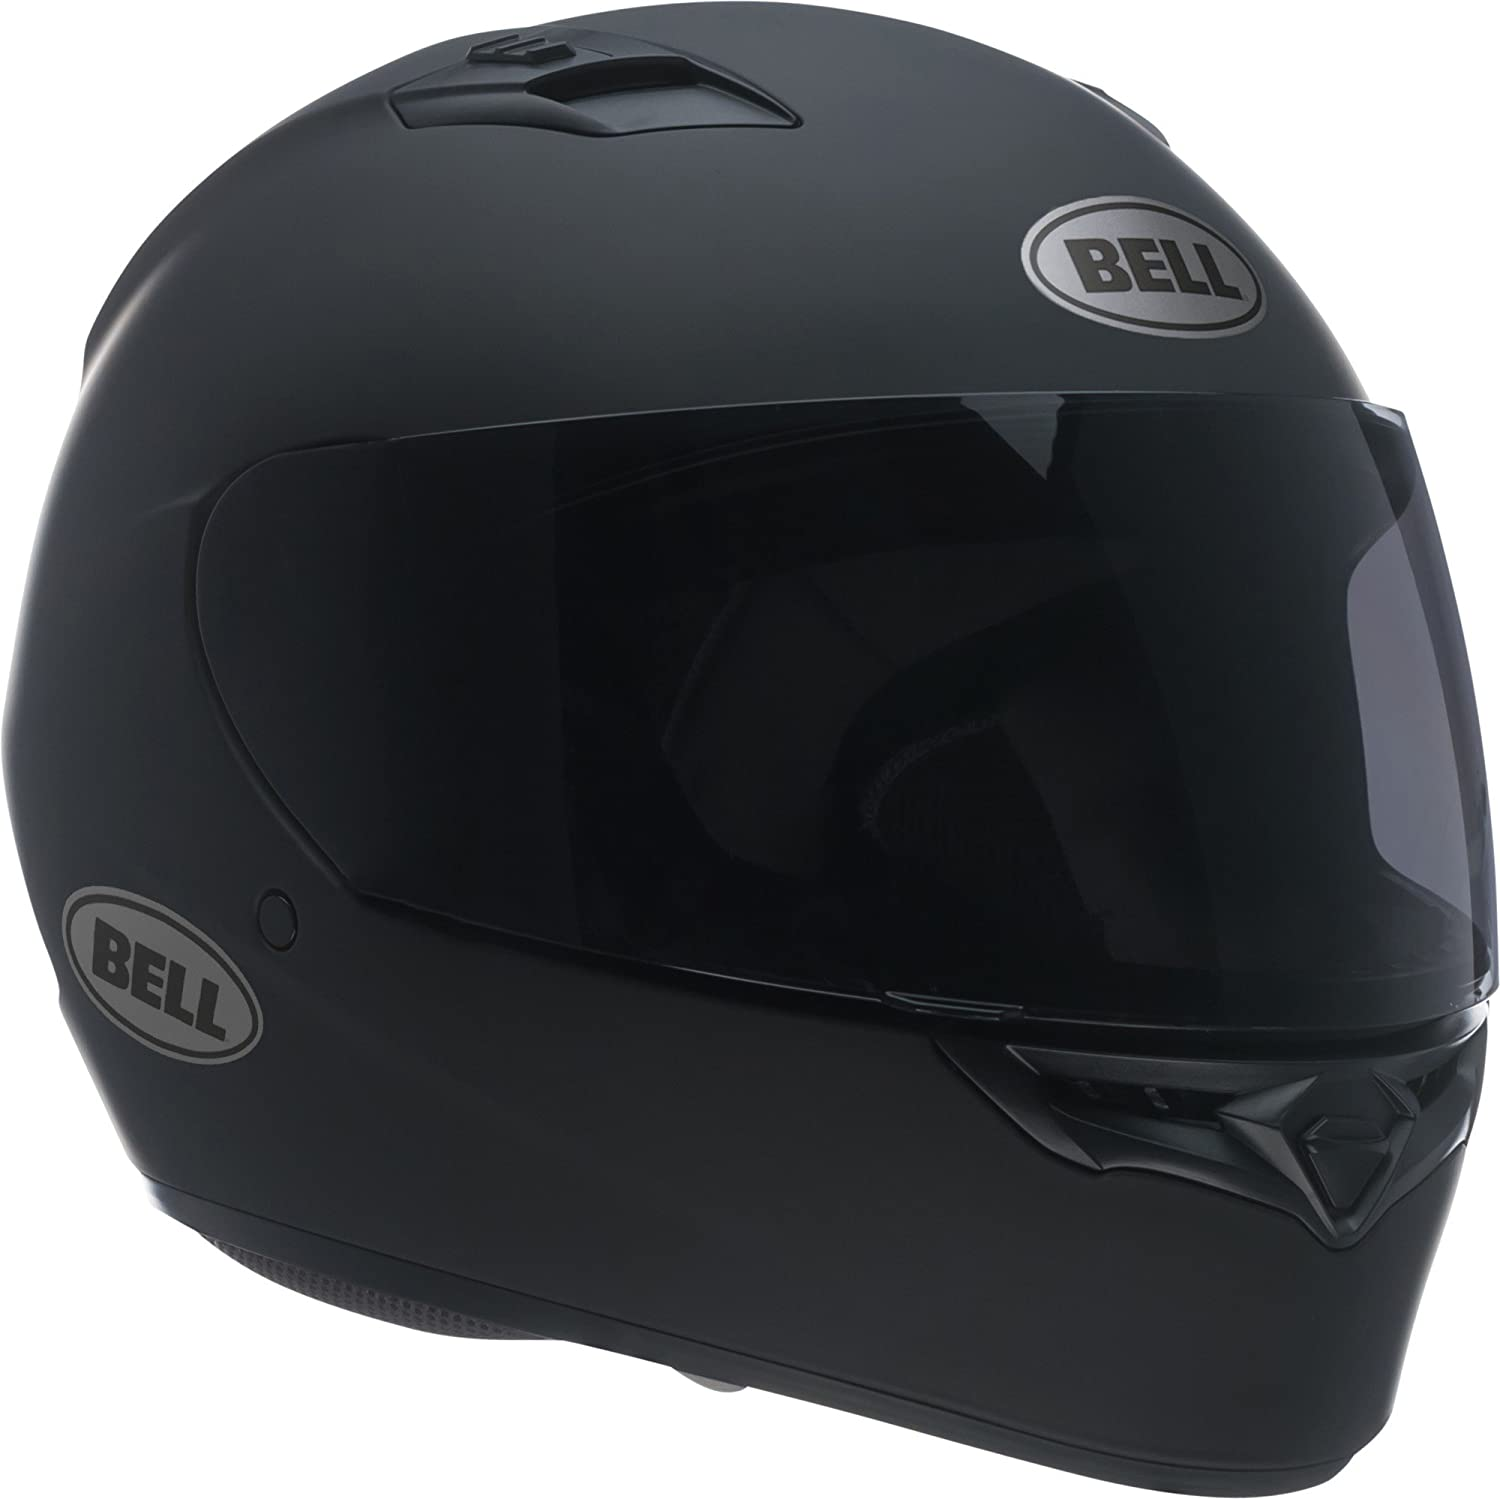 Bell Qualifier Full-Face Motorcycle Helmet (Solid Matte Black, Large)